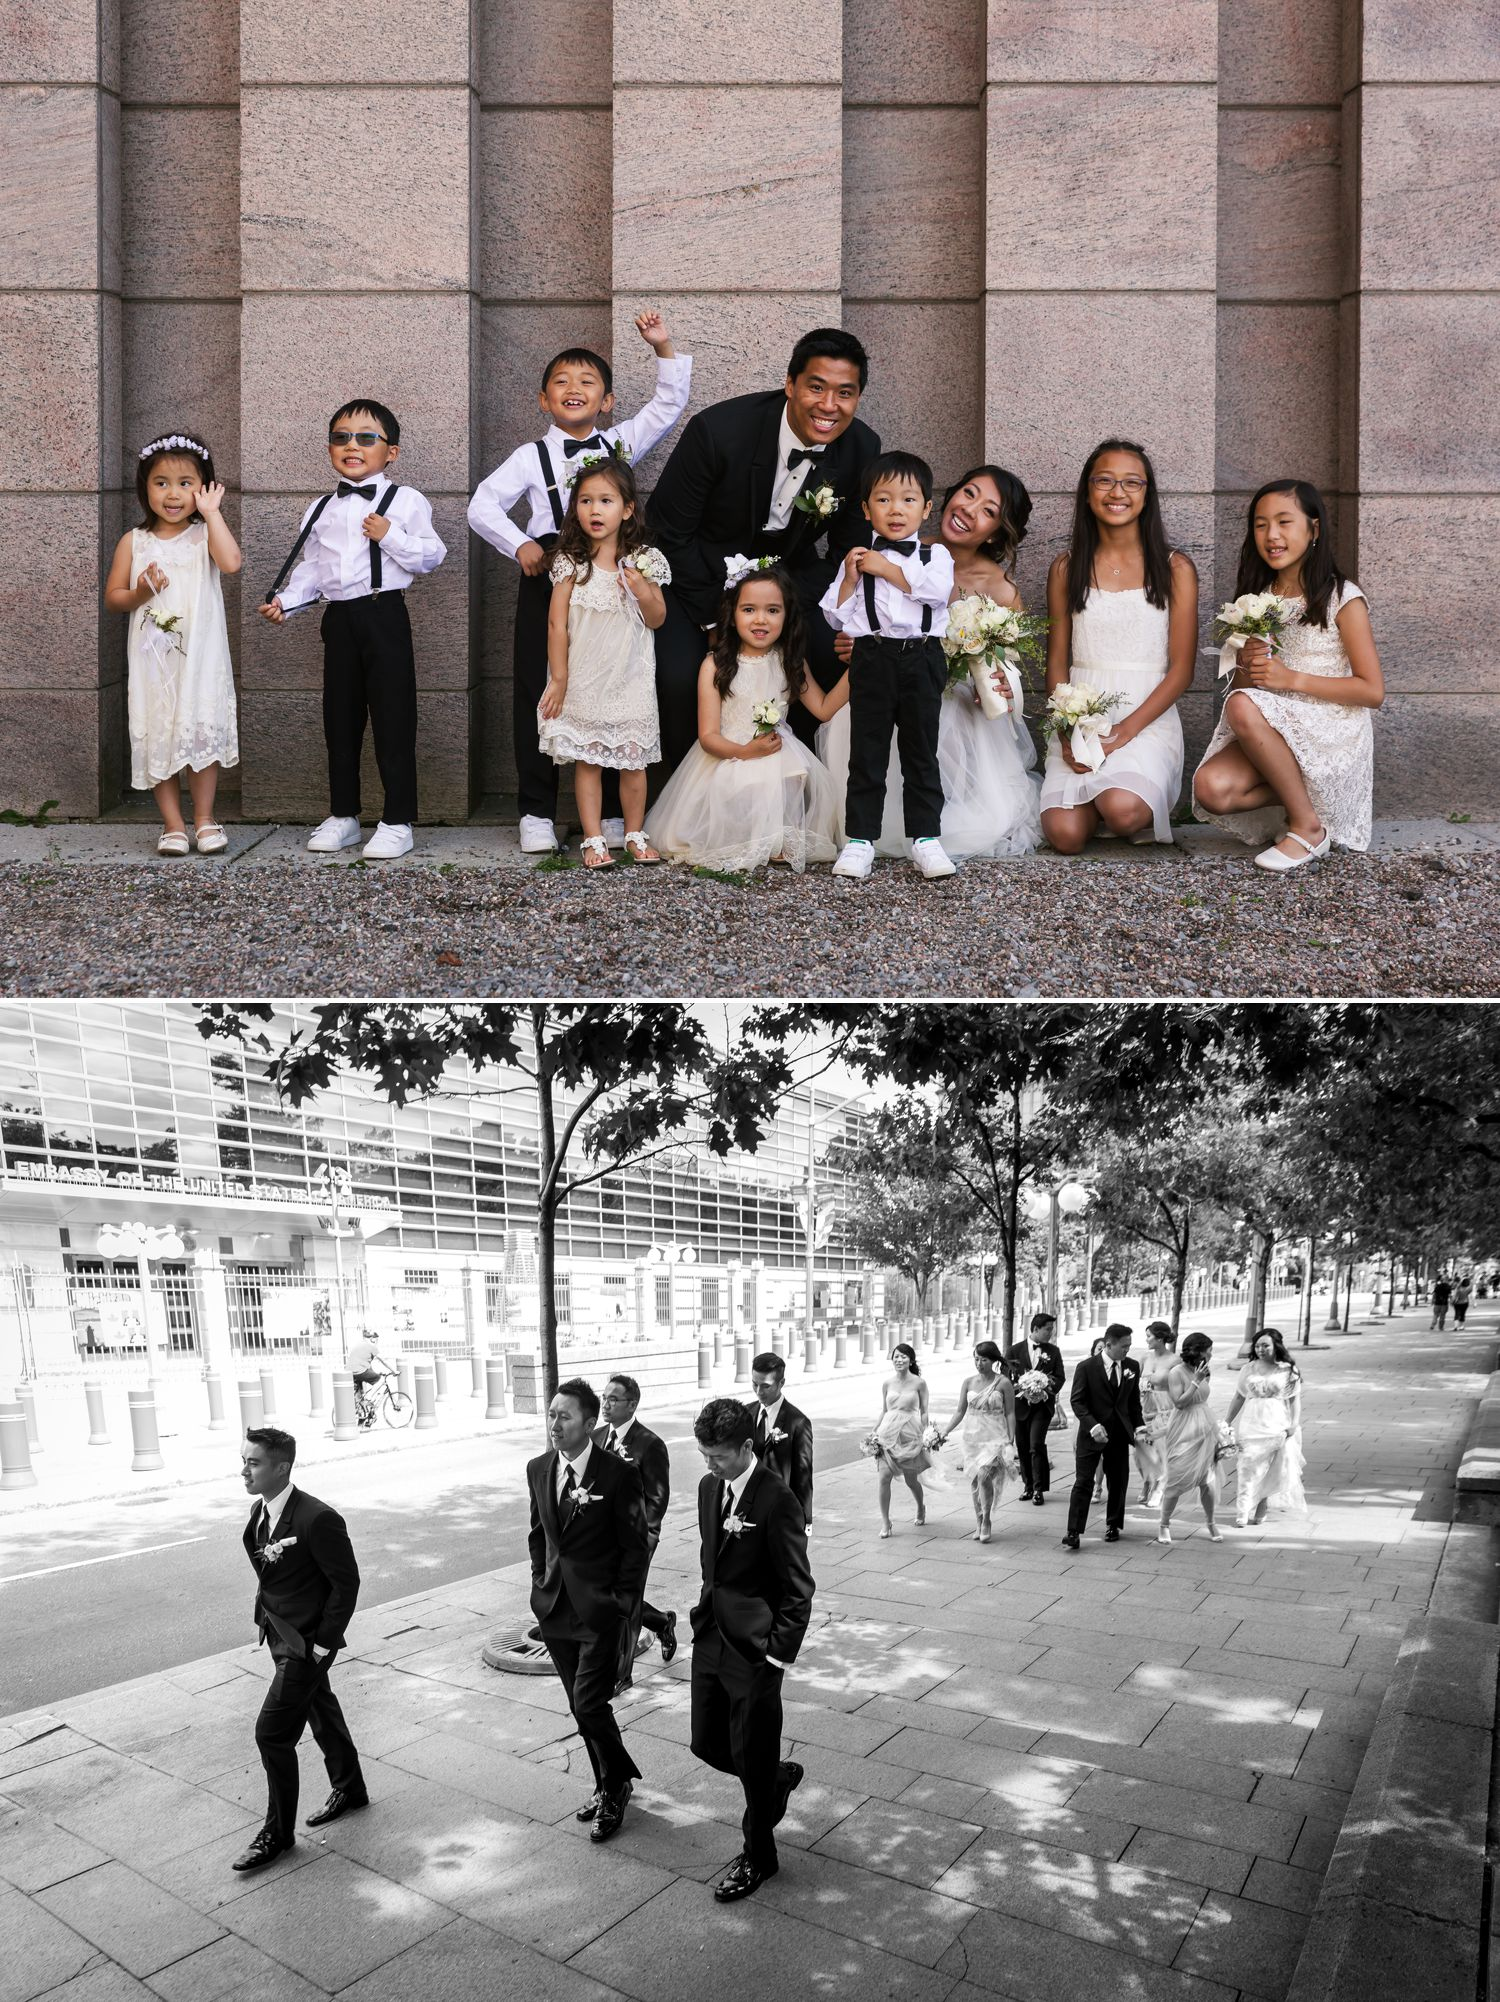 Portraits of the groom with his groomsmen in downtown Ottawa on the way to the wedding reception